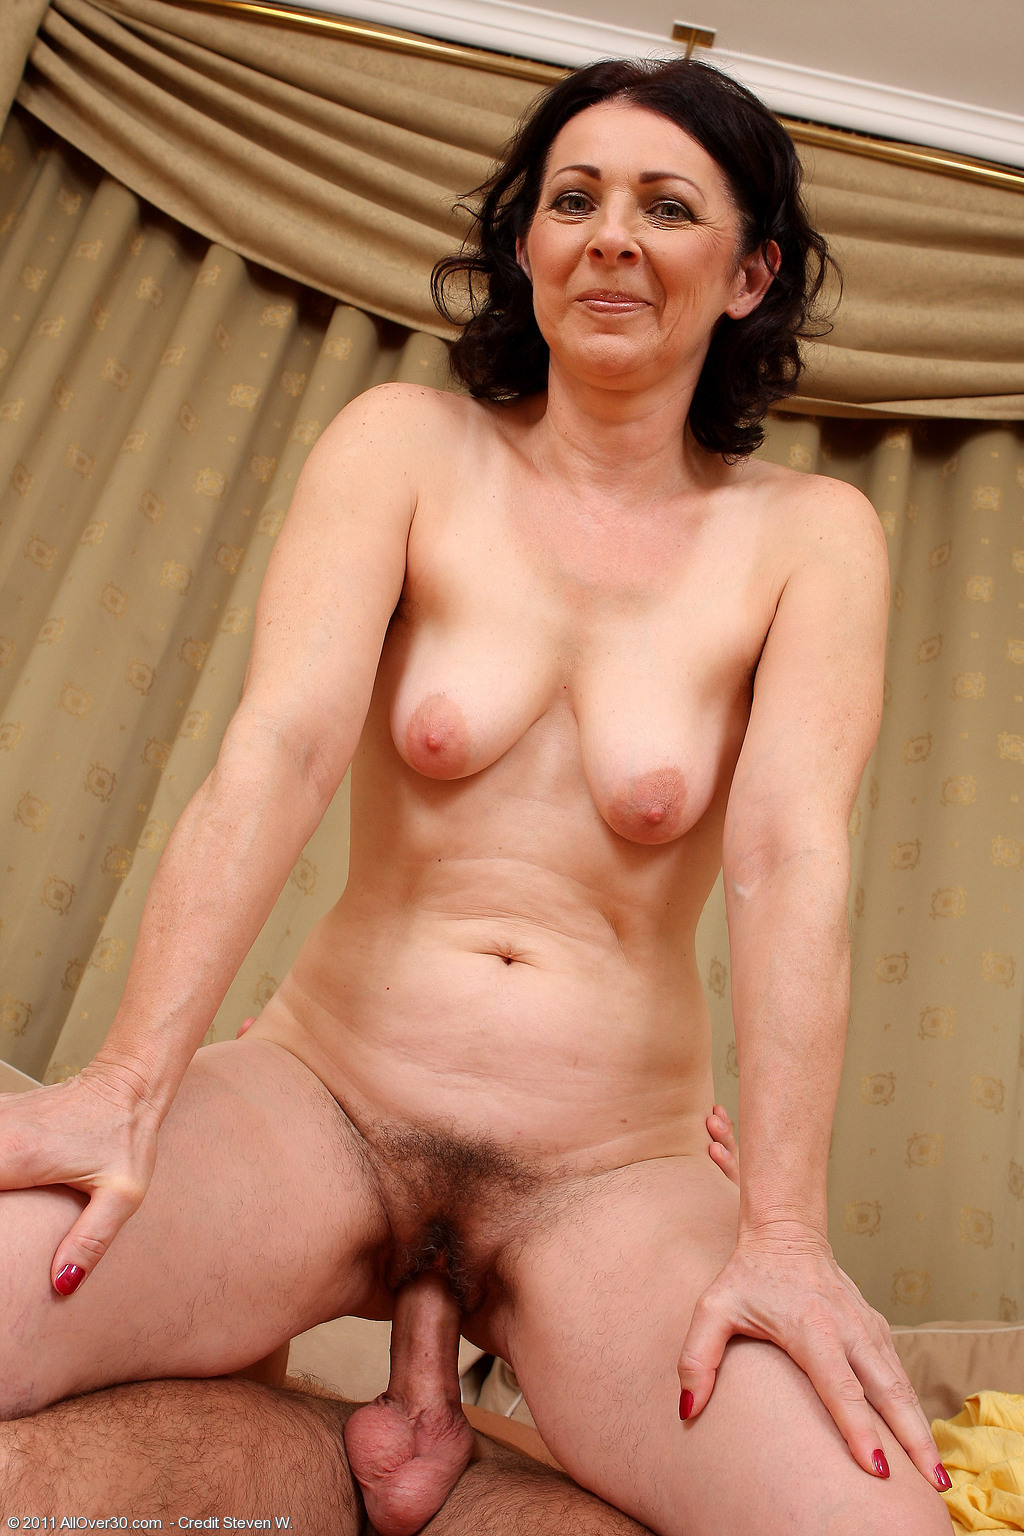 Milf amateur mom video galleries